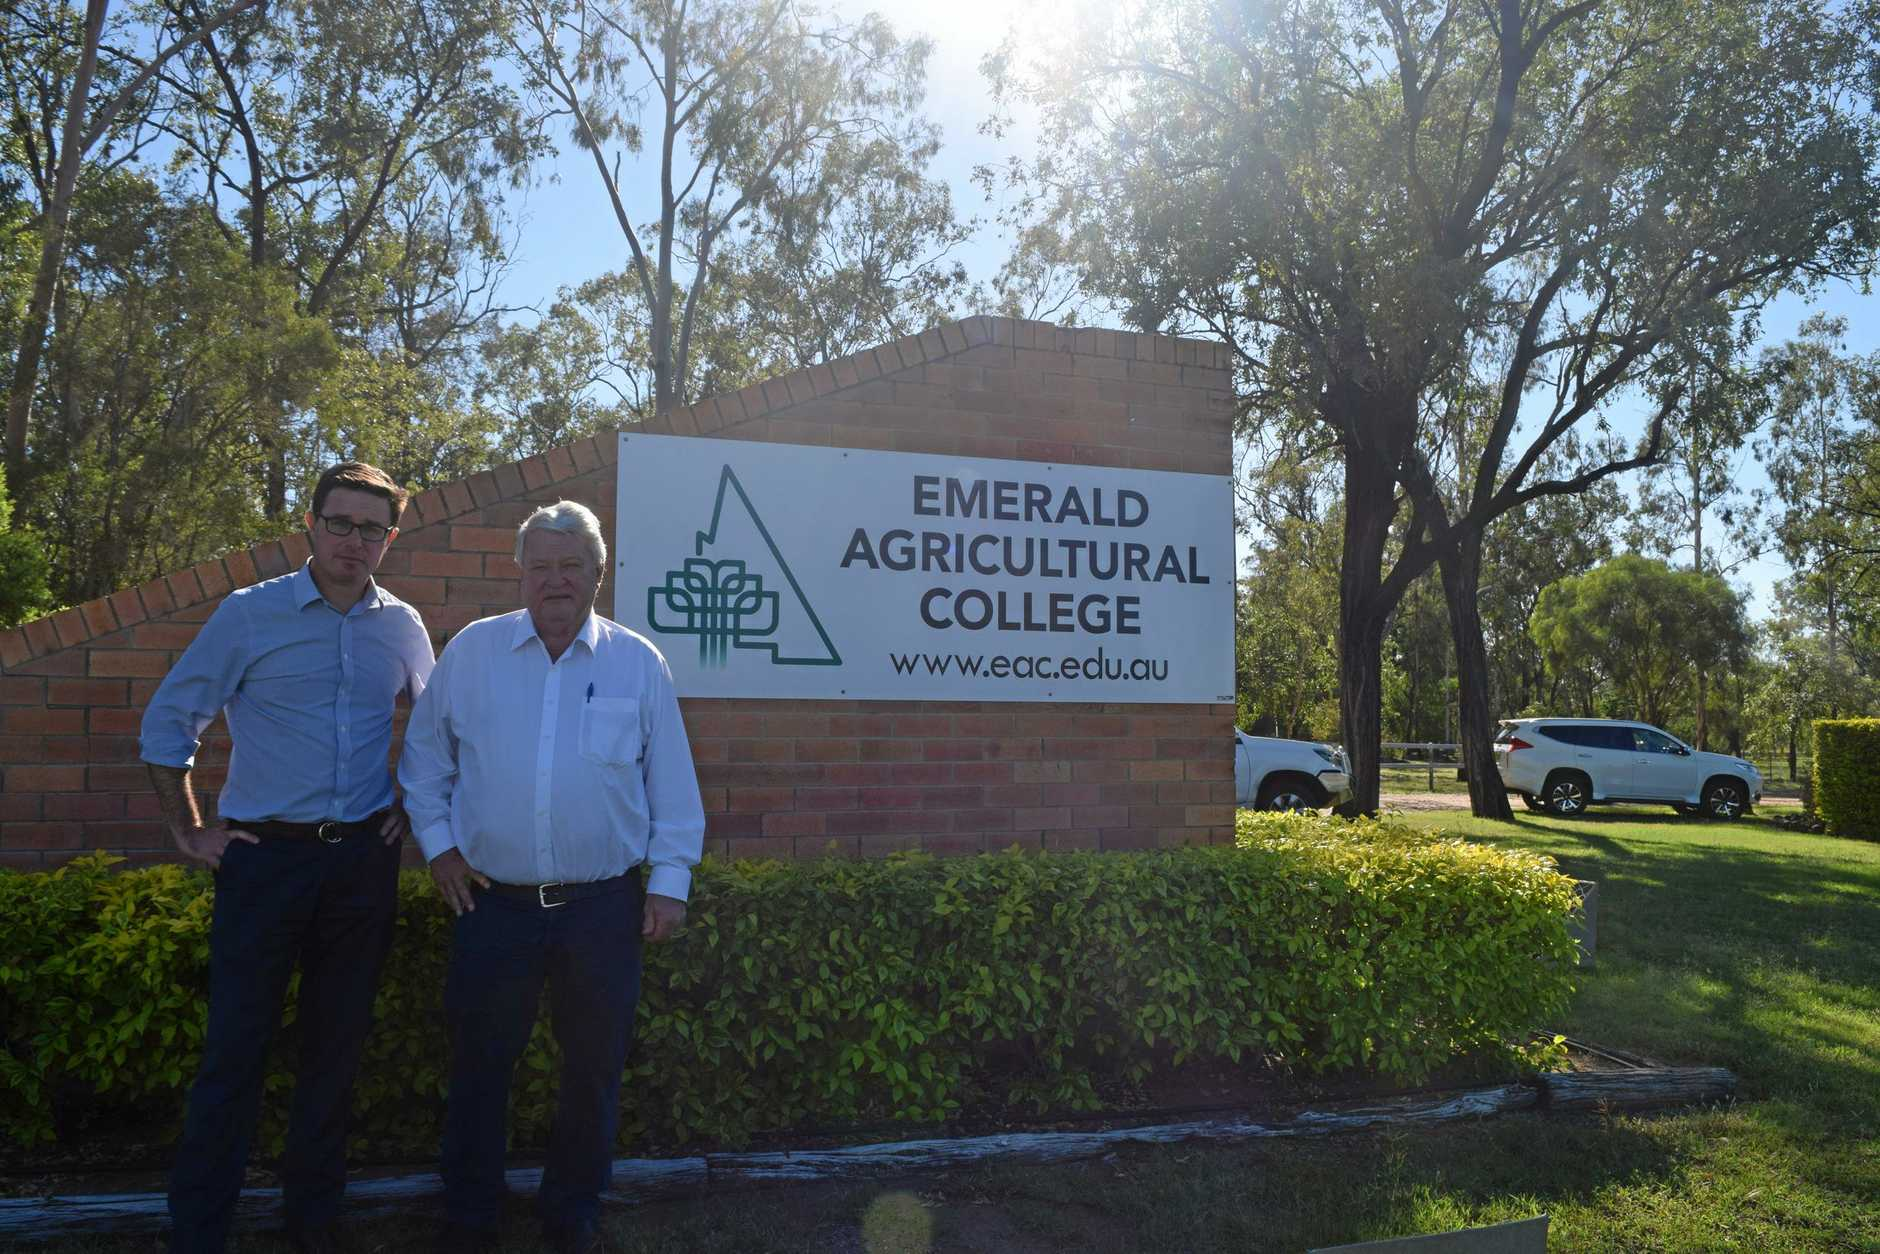 NOT HAPPY: Federal Minister for Agriculture and Water Resources David Littleproud and Federal Member for Flynn Ken O'Dowd are campaigning against the closure of Emerald Agriculture College.